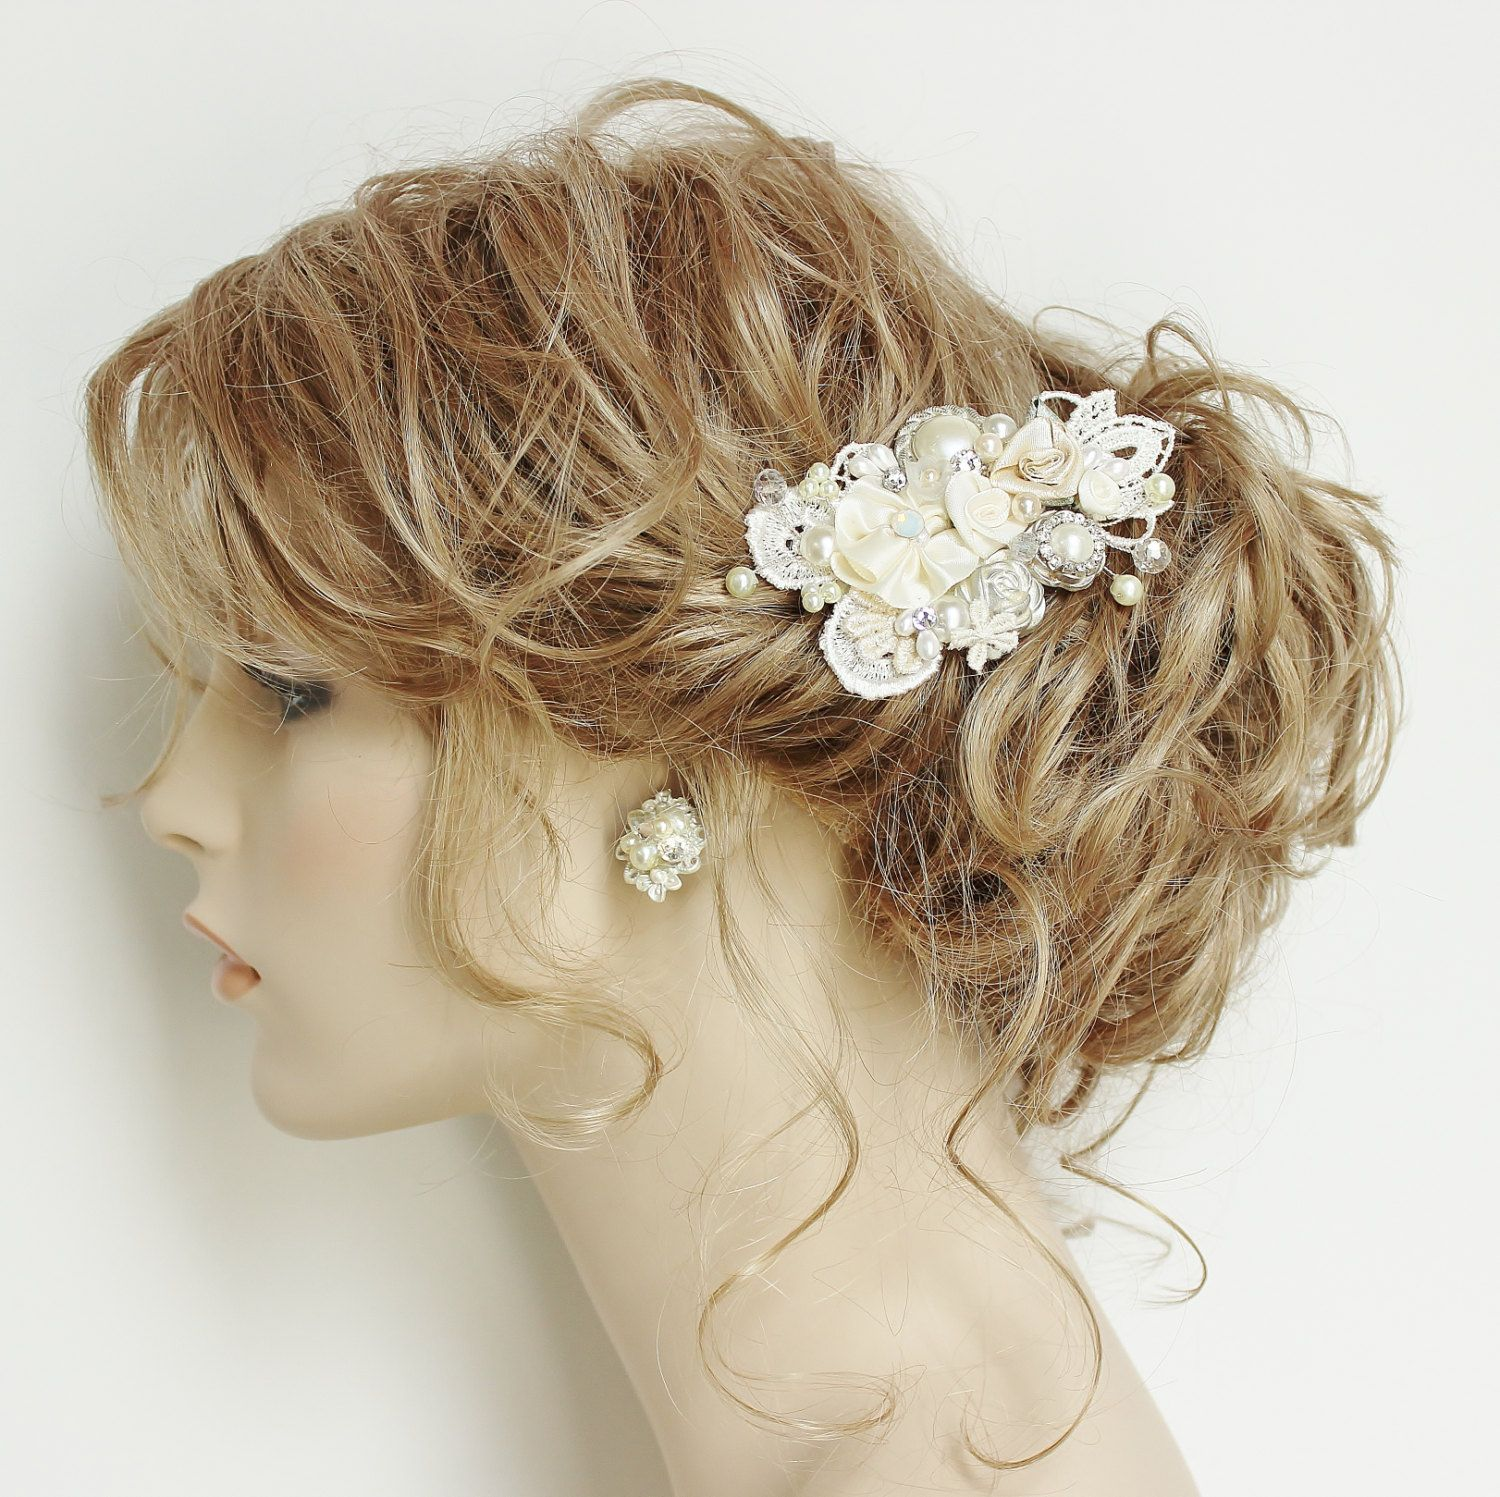 ivory bridal hair comb- ivory clip with flowers,rhinestone, pearls